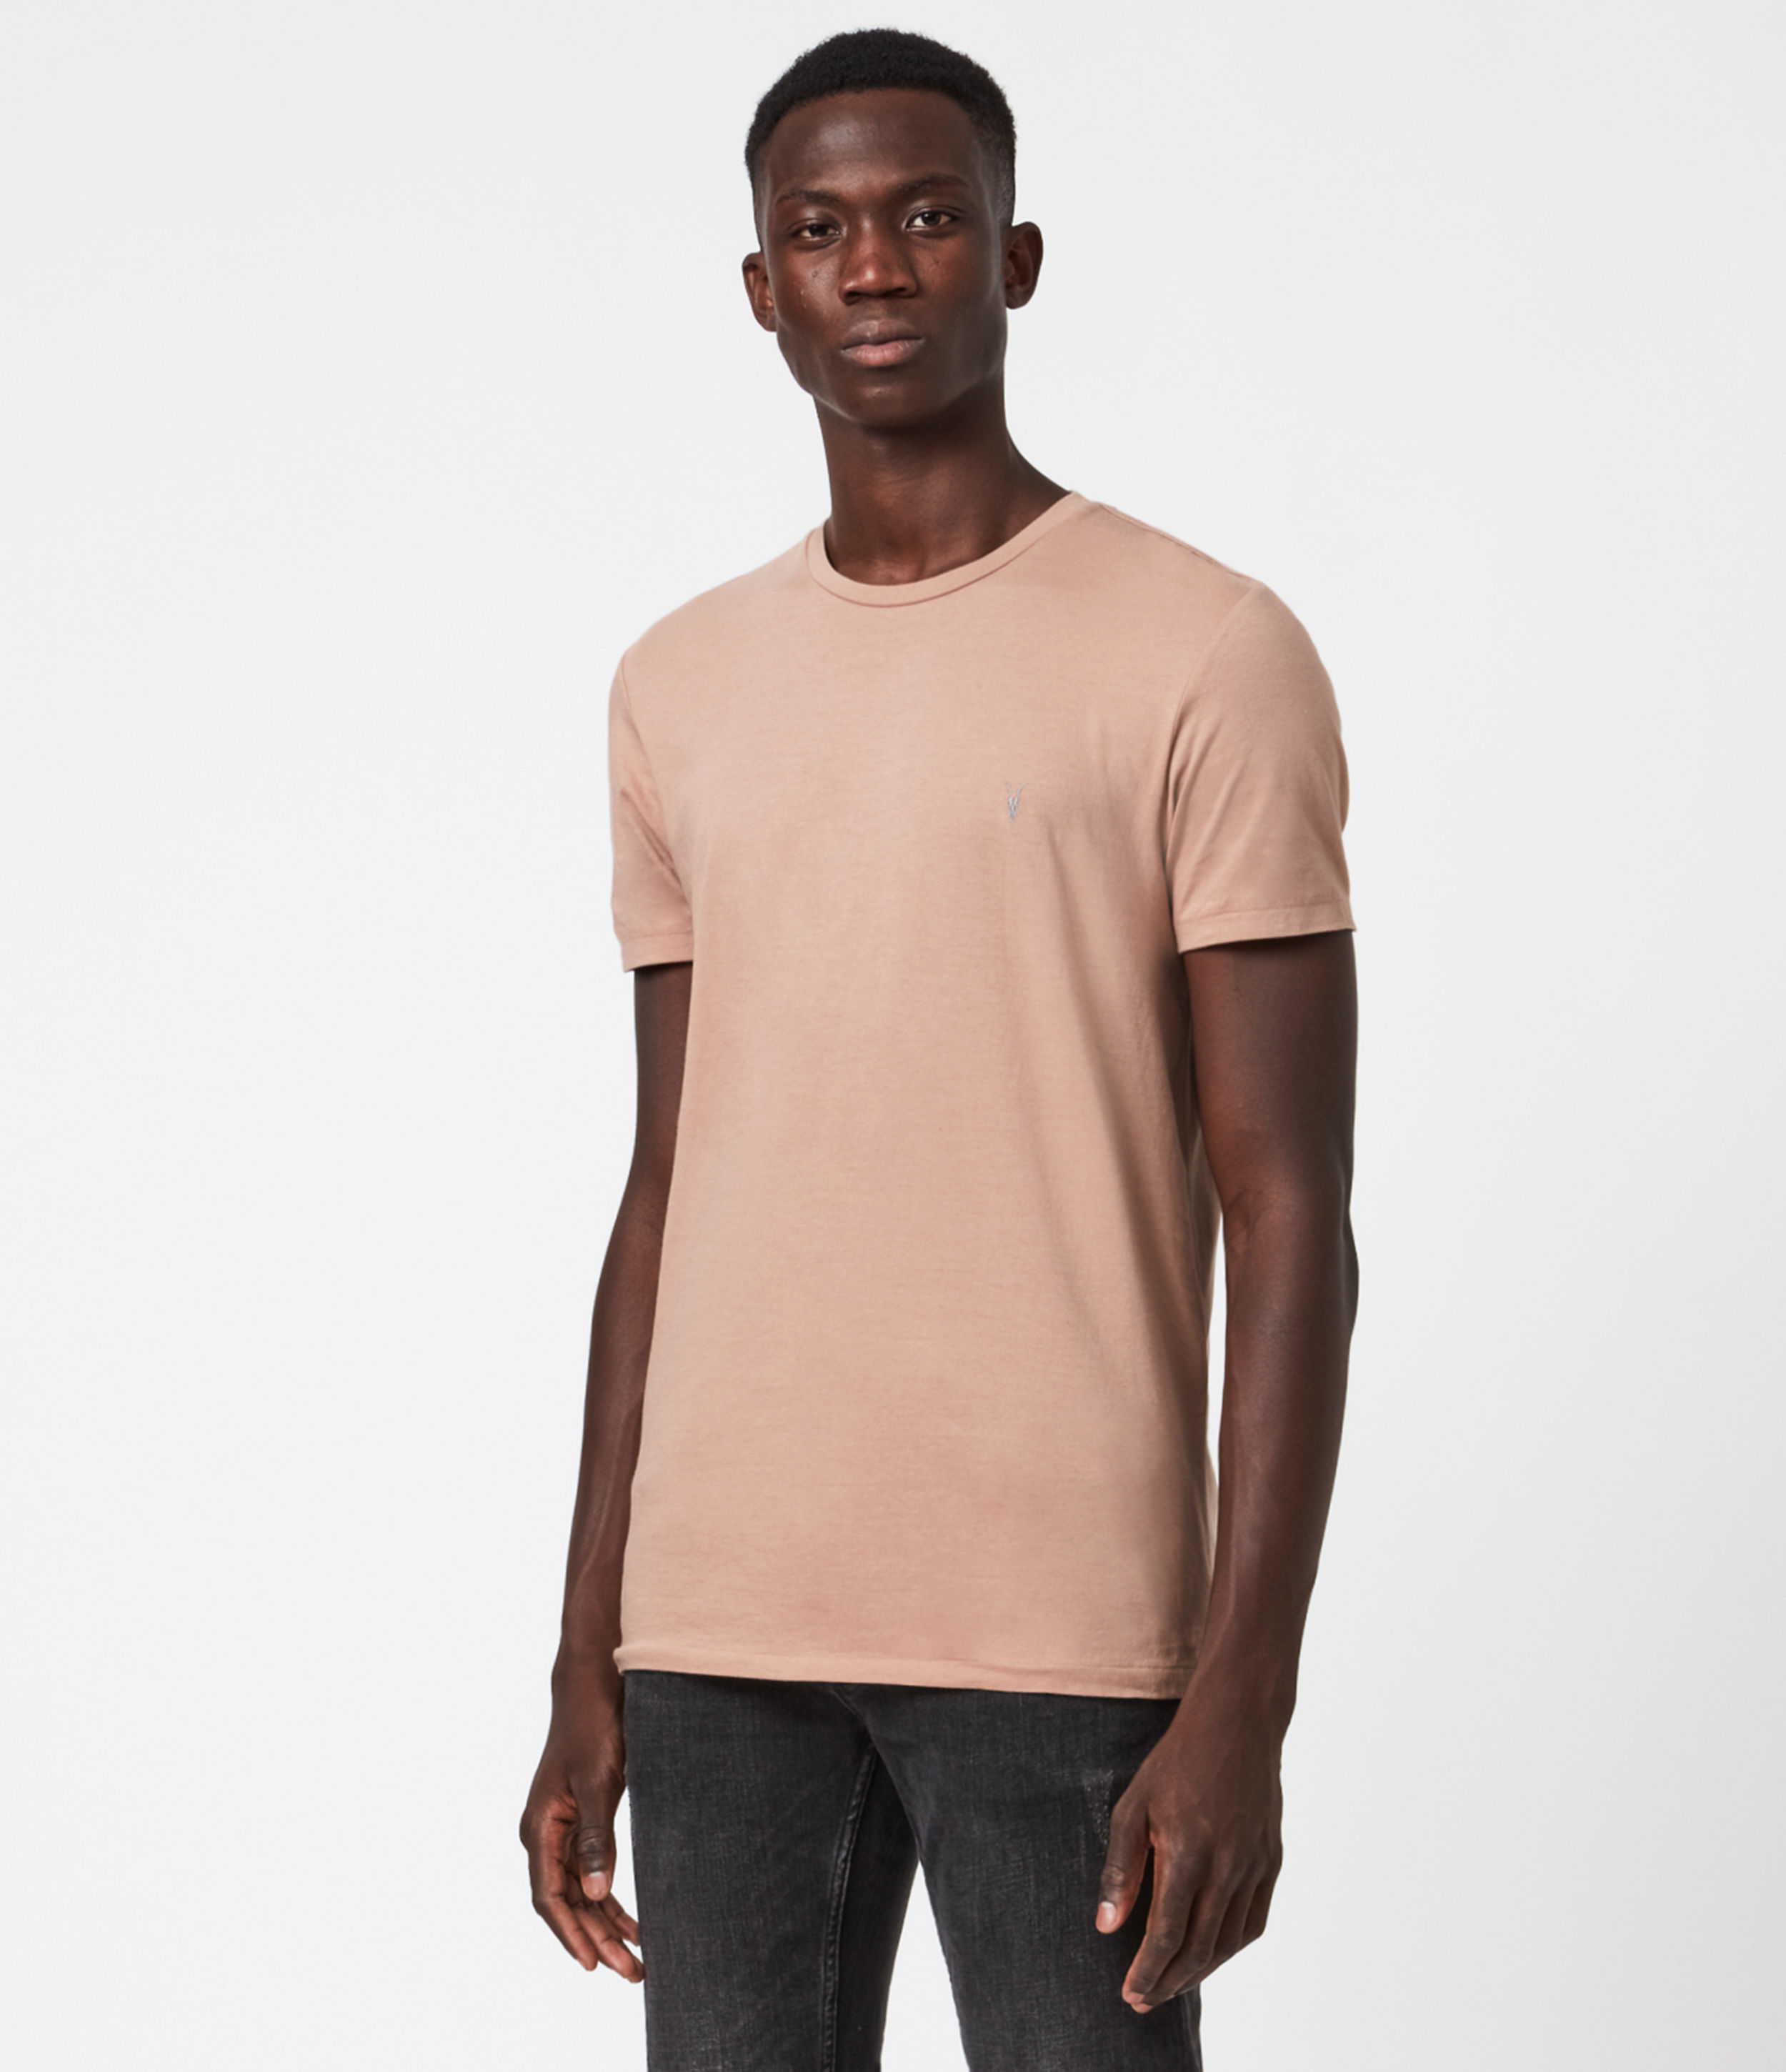 AllSaints Tonic Short Sleeve Crew T-Shirt